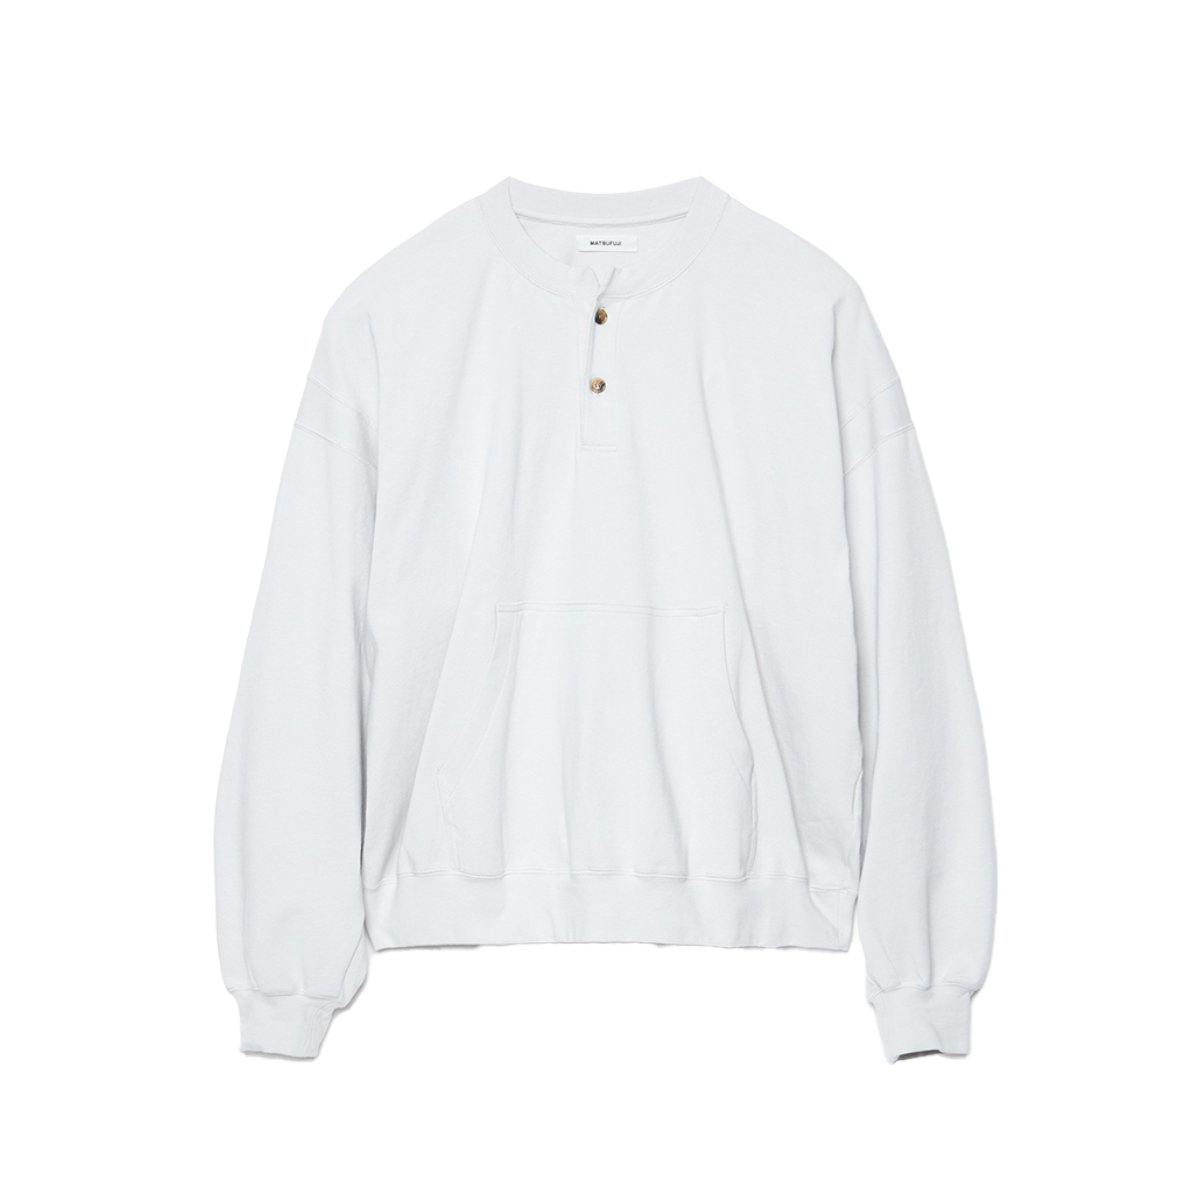 <img class='new_mark_img1' src='https://img.shop-pro.jp/img/new/icons47.gif' style='border:none;display:inline;margin:0px;padding:0px;width:auto;' />Henry Neck Sweat Shirt / L.GRAY